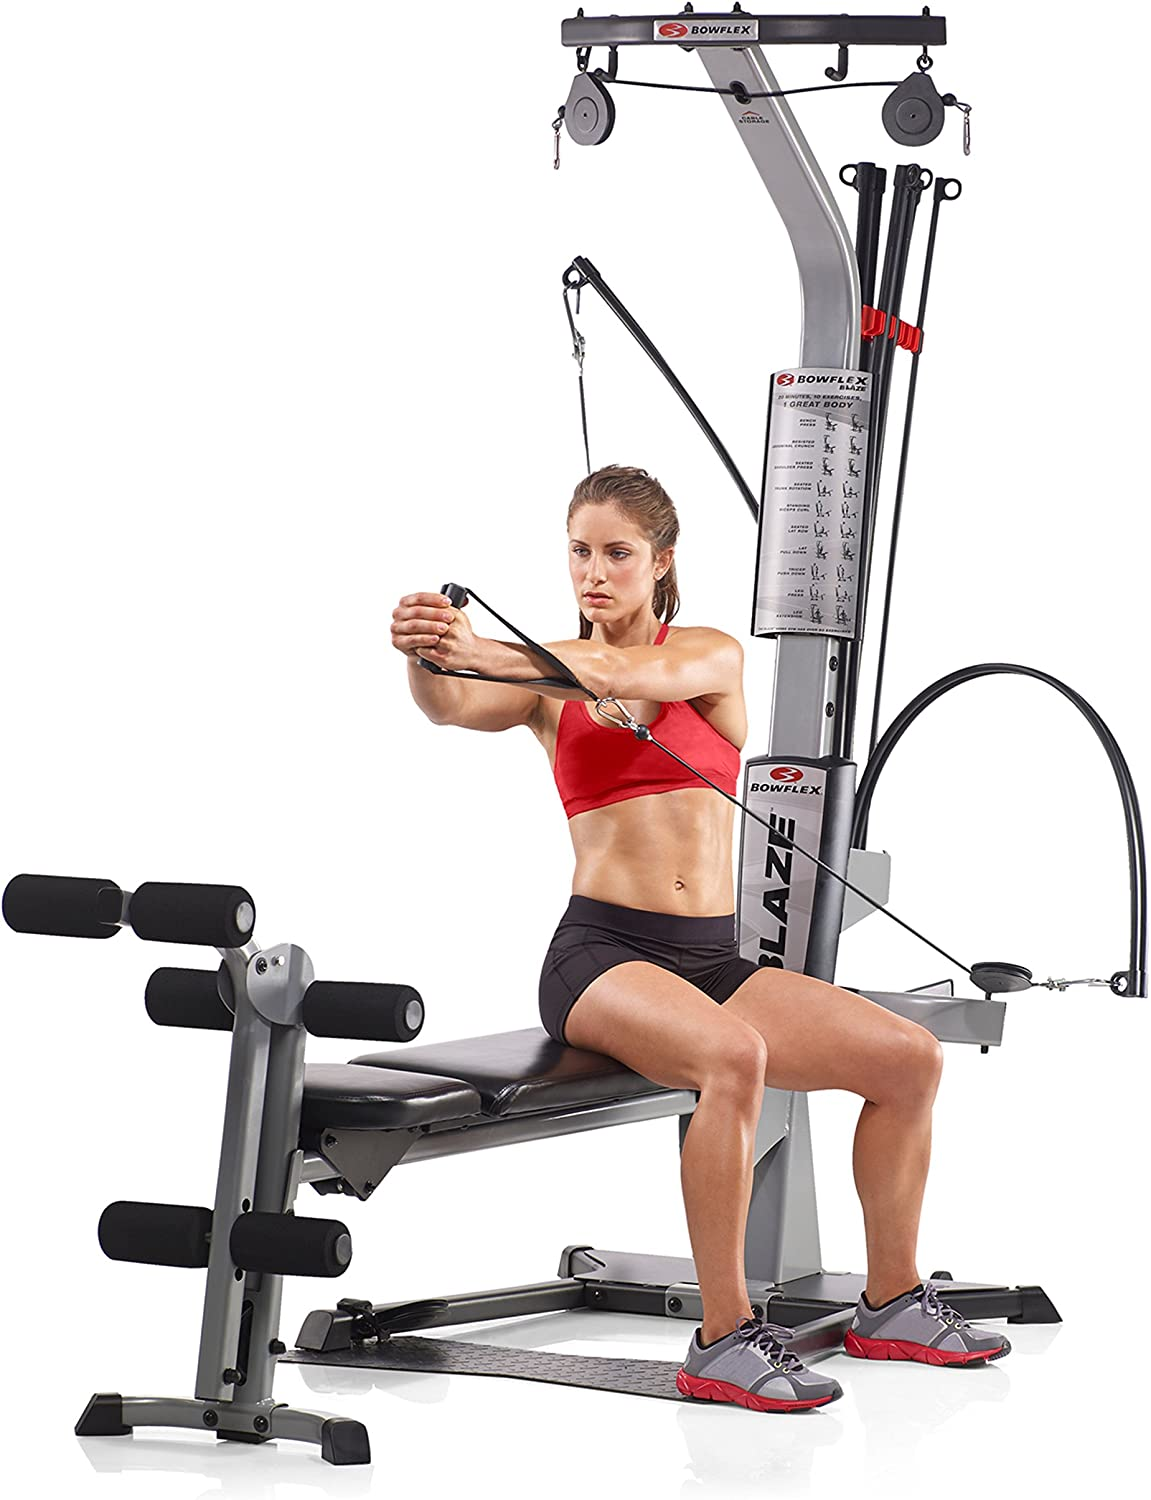 Best Home Gyms (2021): Top 10 Amazing Workout Equipment 13